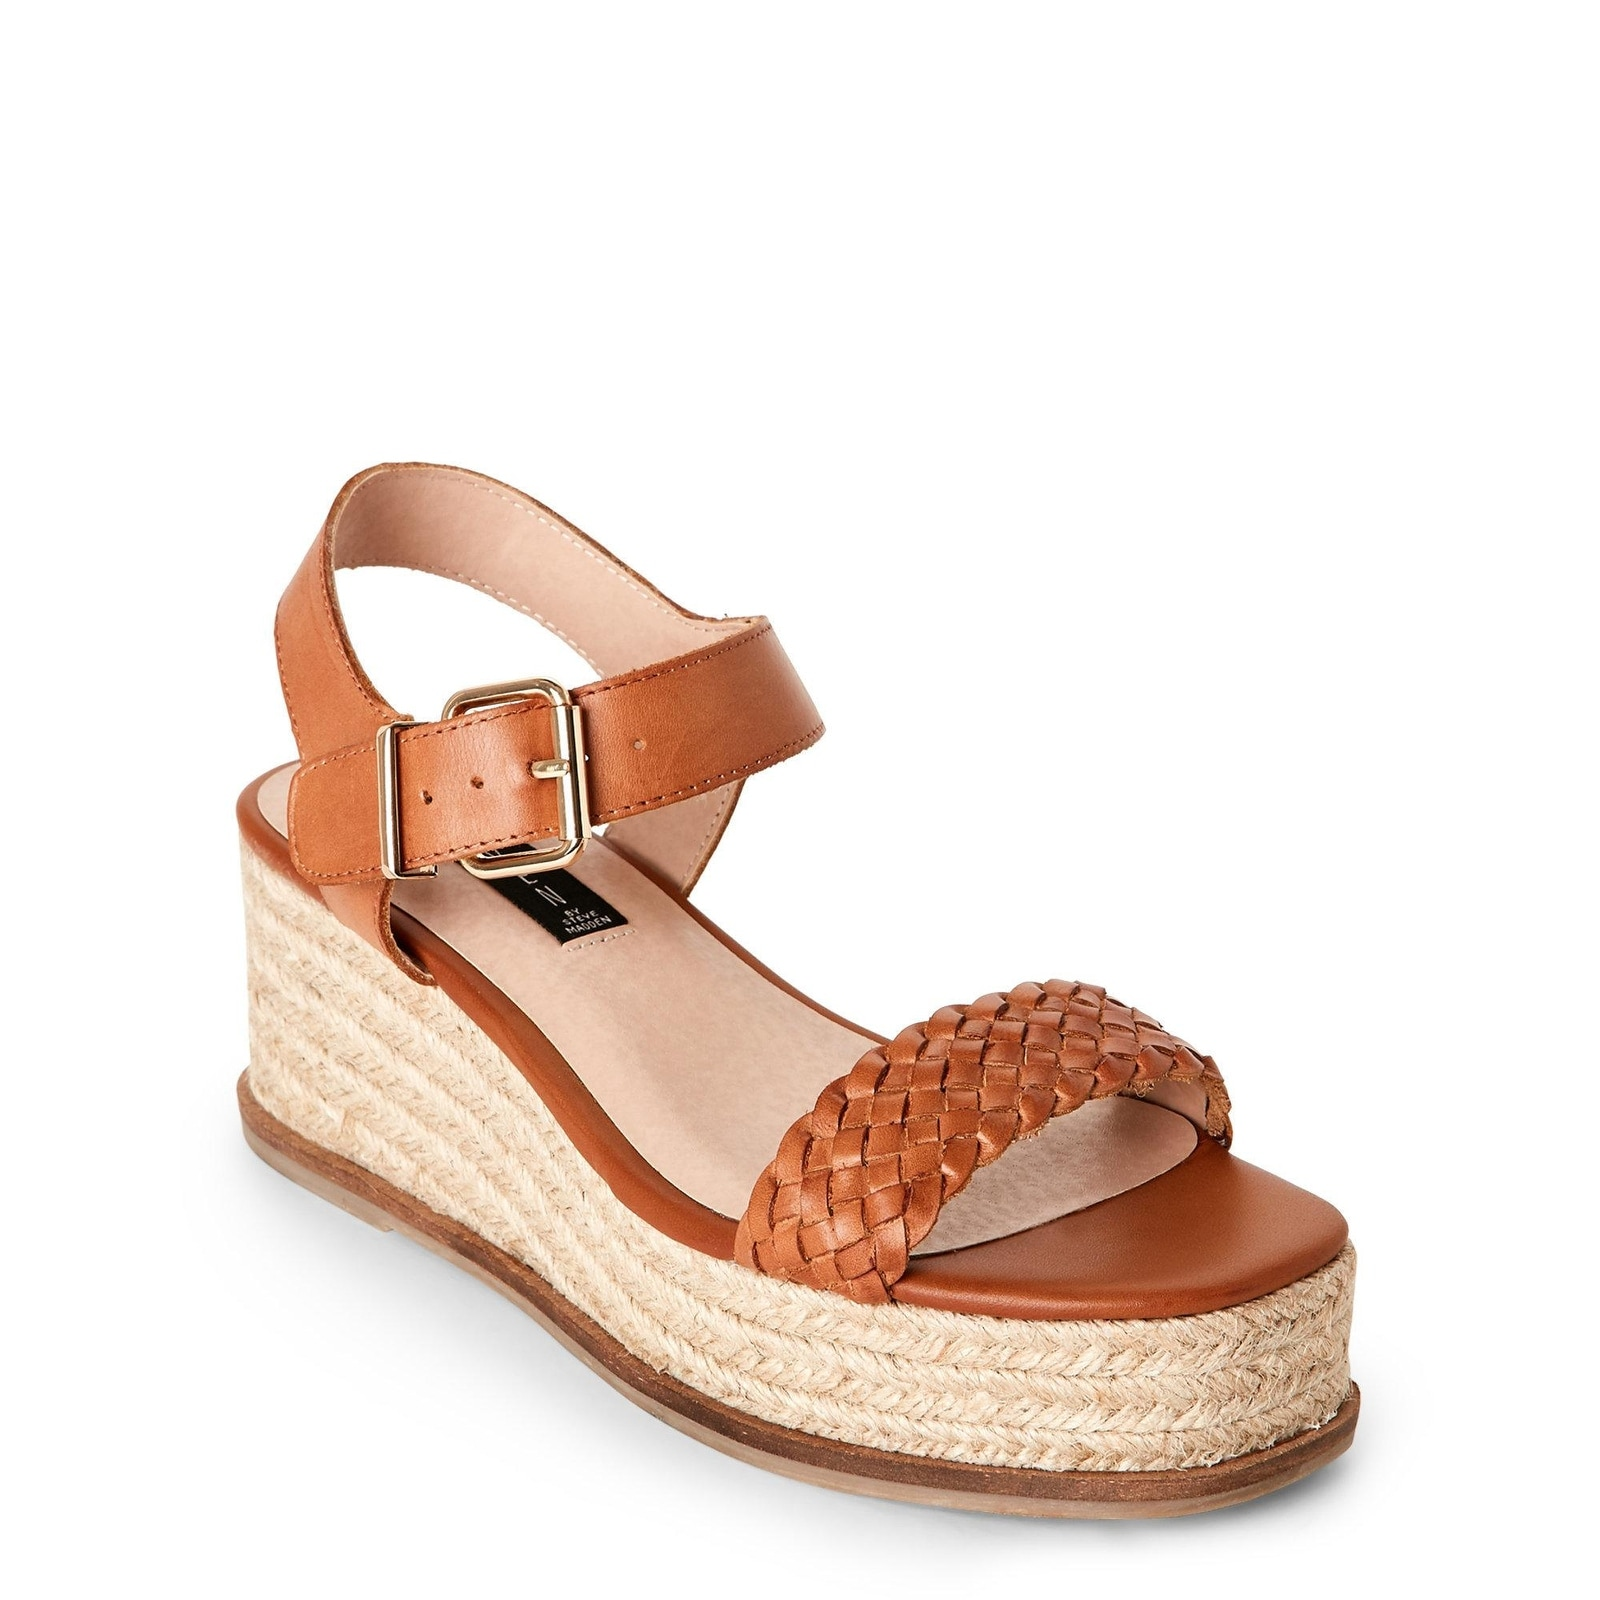 5ead778586e Shop STEVEN by Steve Madden Womens sabble Leather Open Toe Casual Platform  Sandals - On Sale - Free Shipping Today - Overstock.com - 22319500